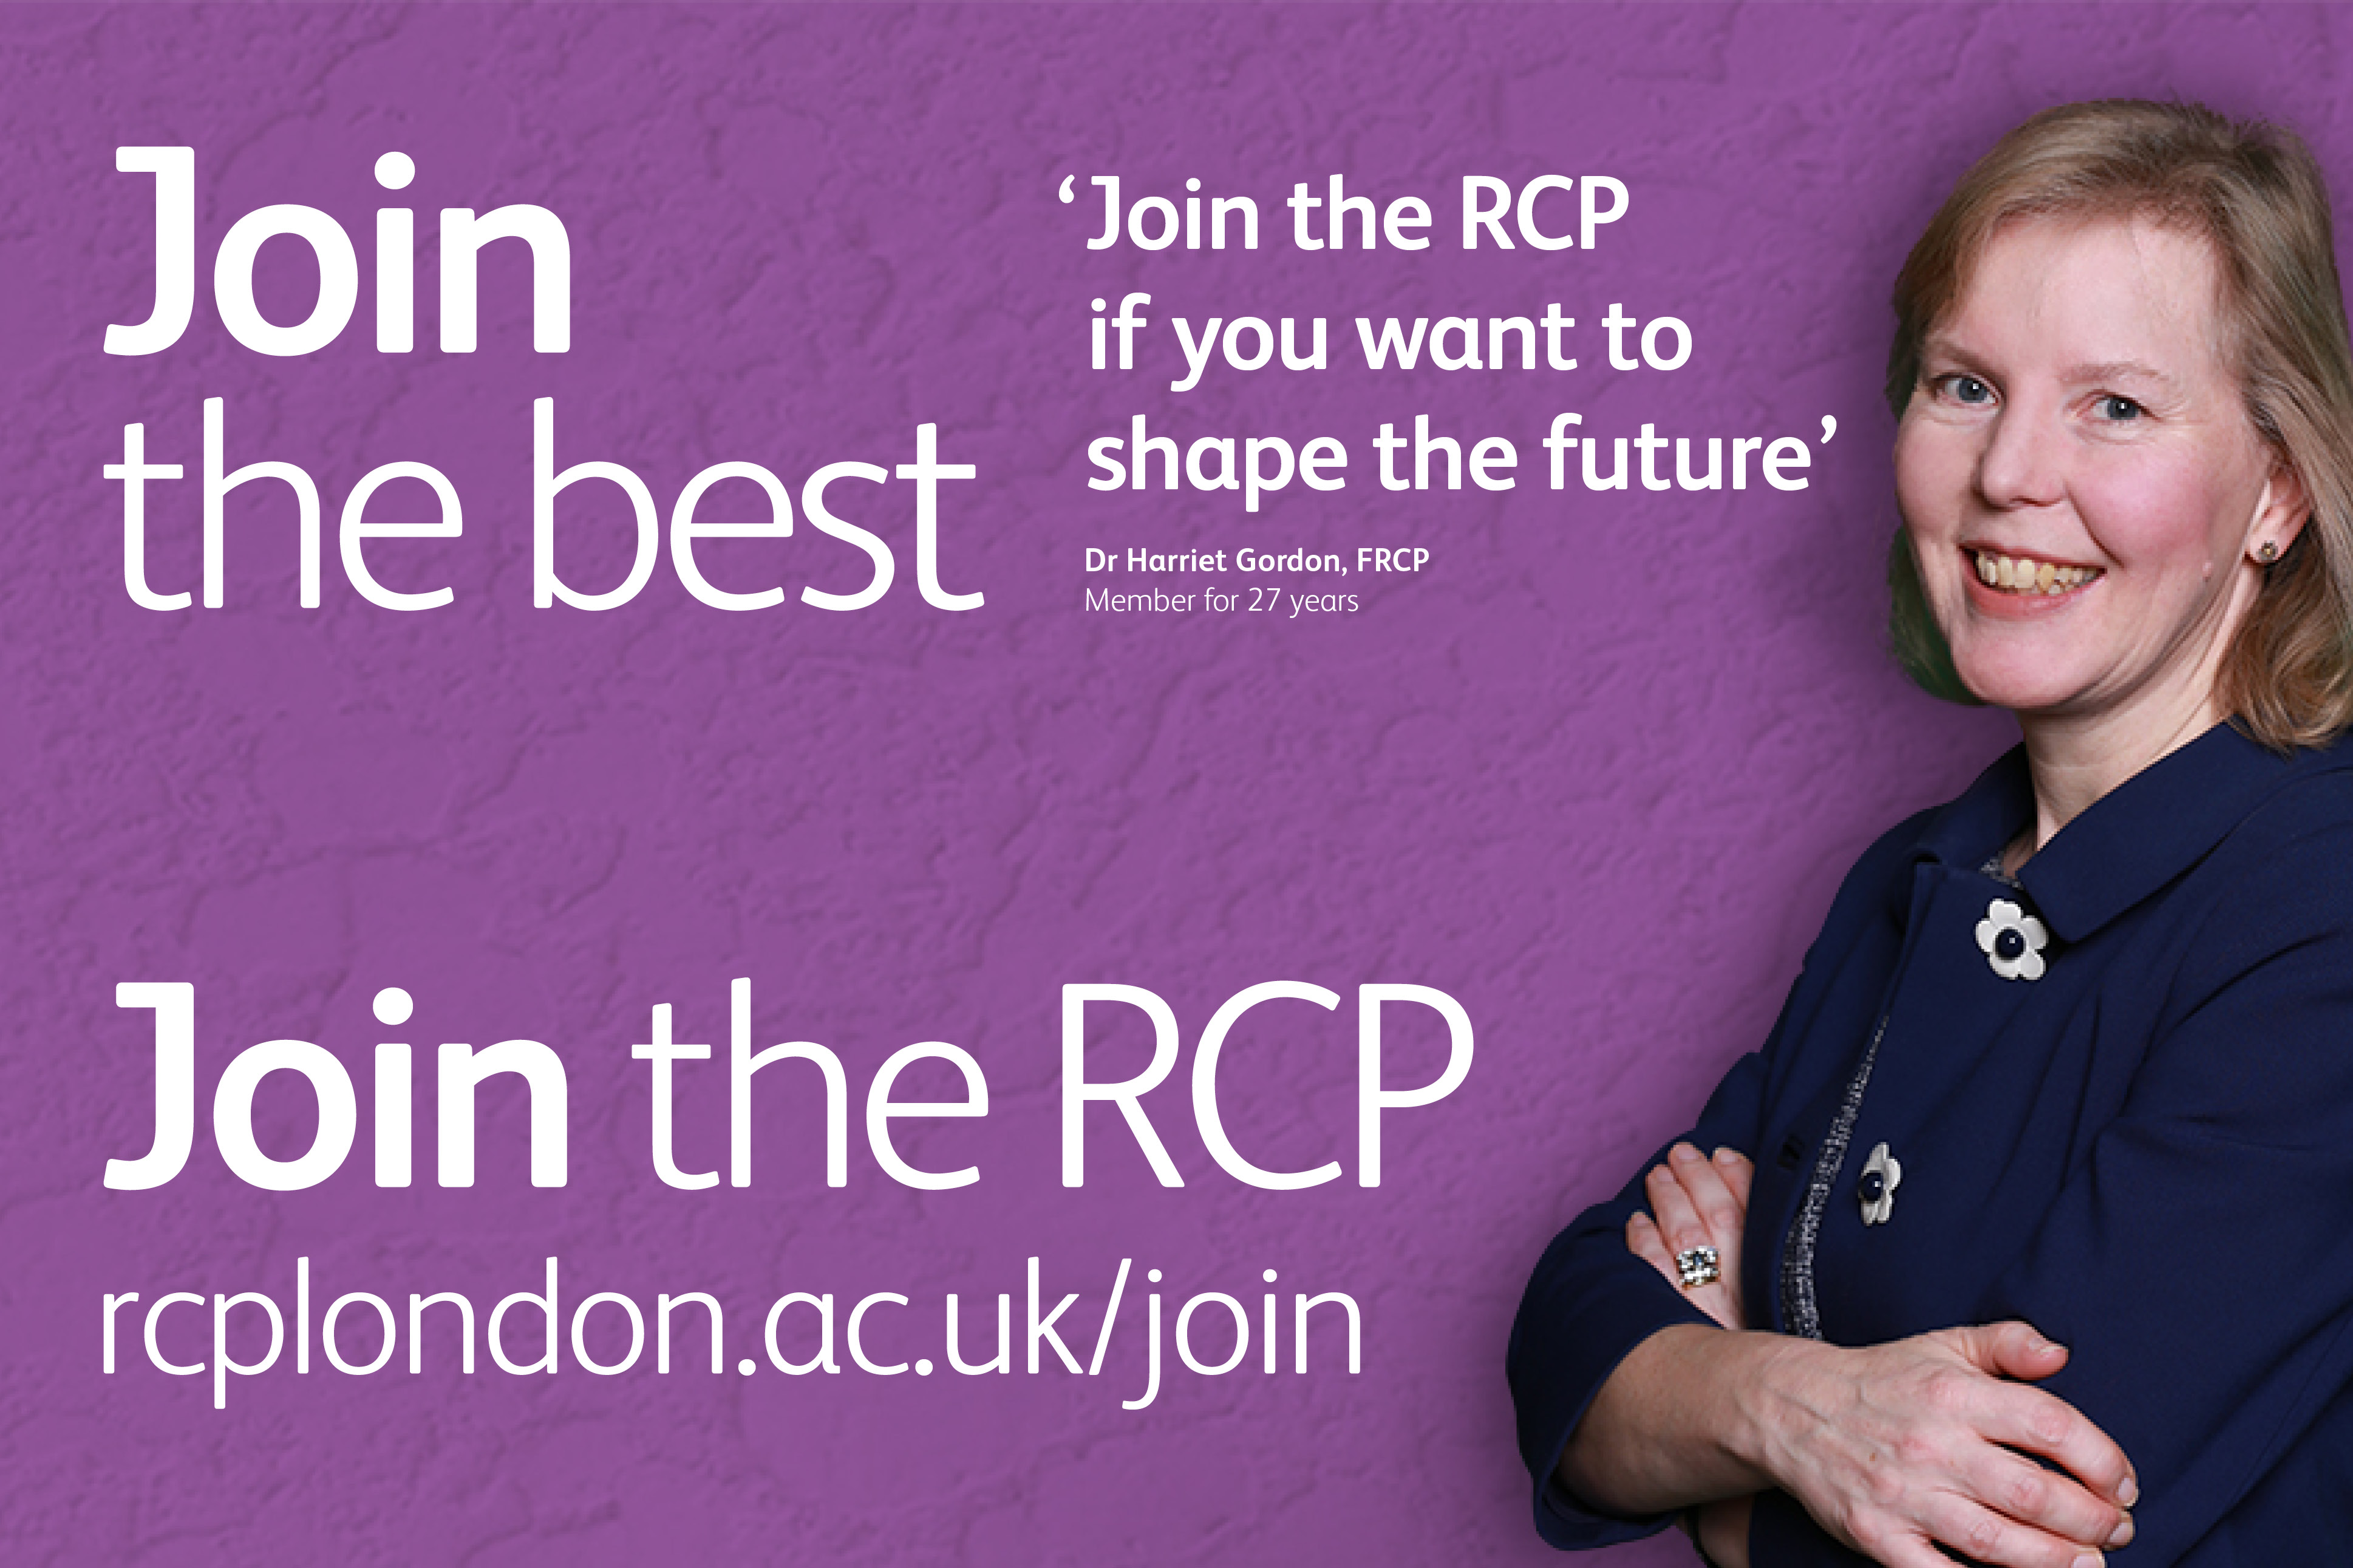 Quote from Dr Harriet Gordon, FRCP: 'Join the RCP if you want to shape the future'